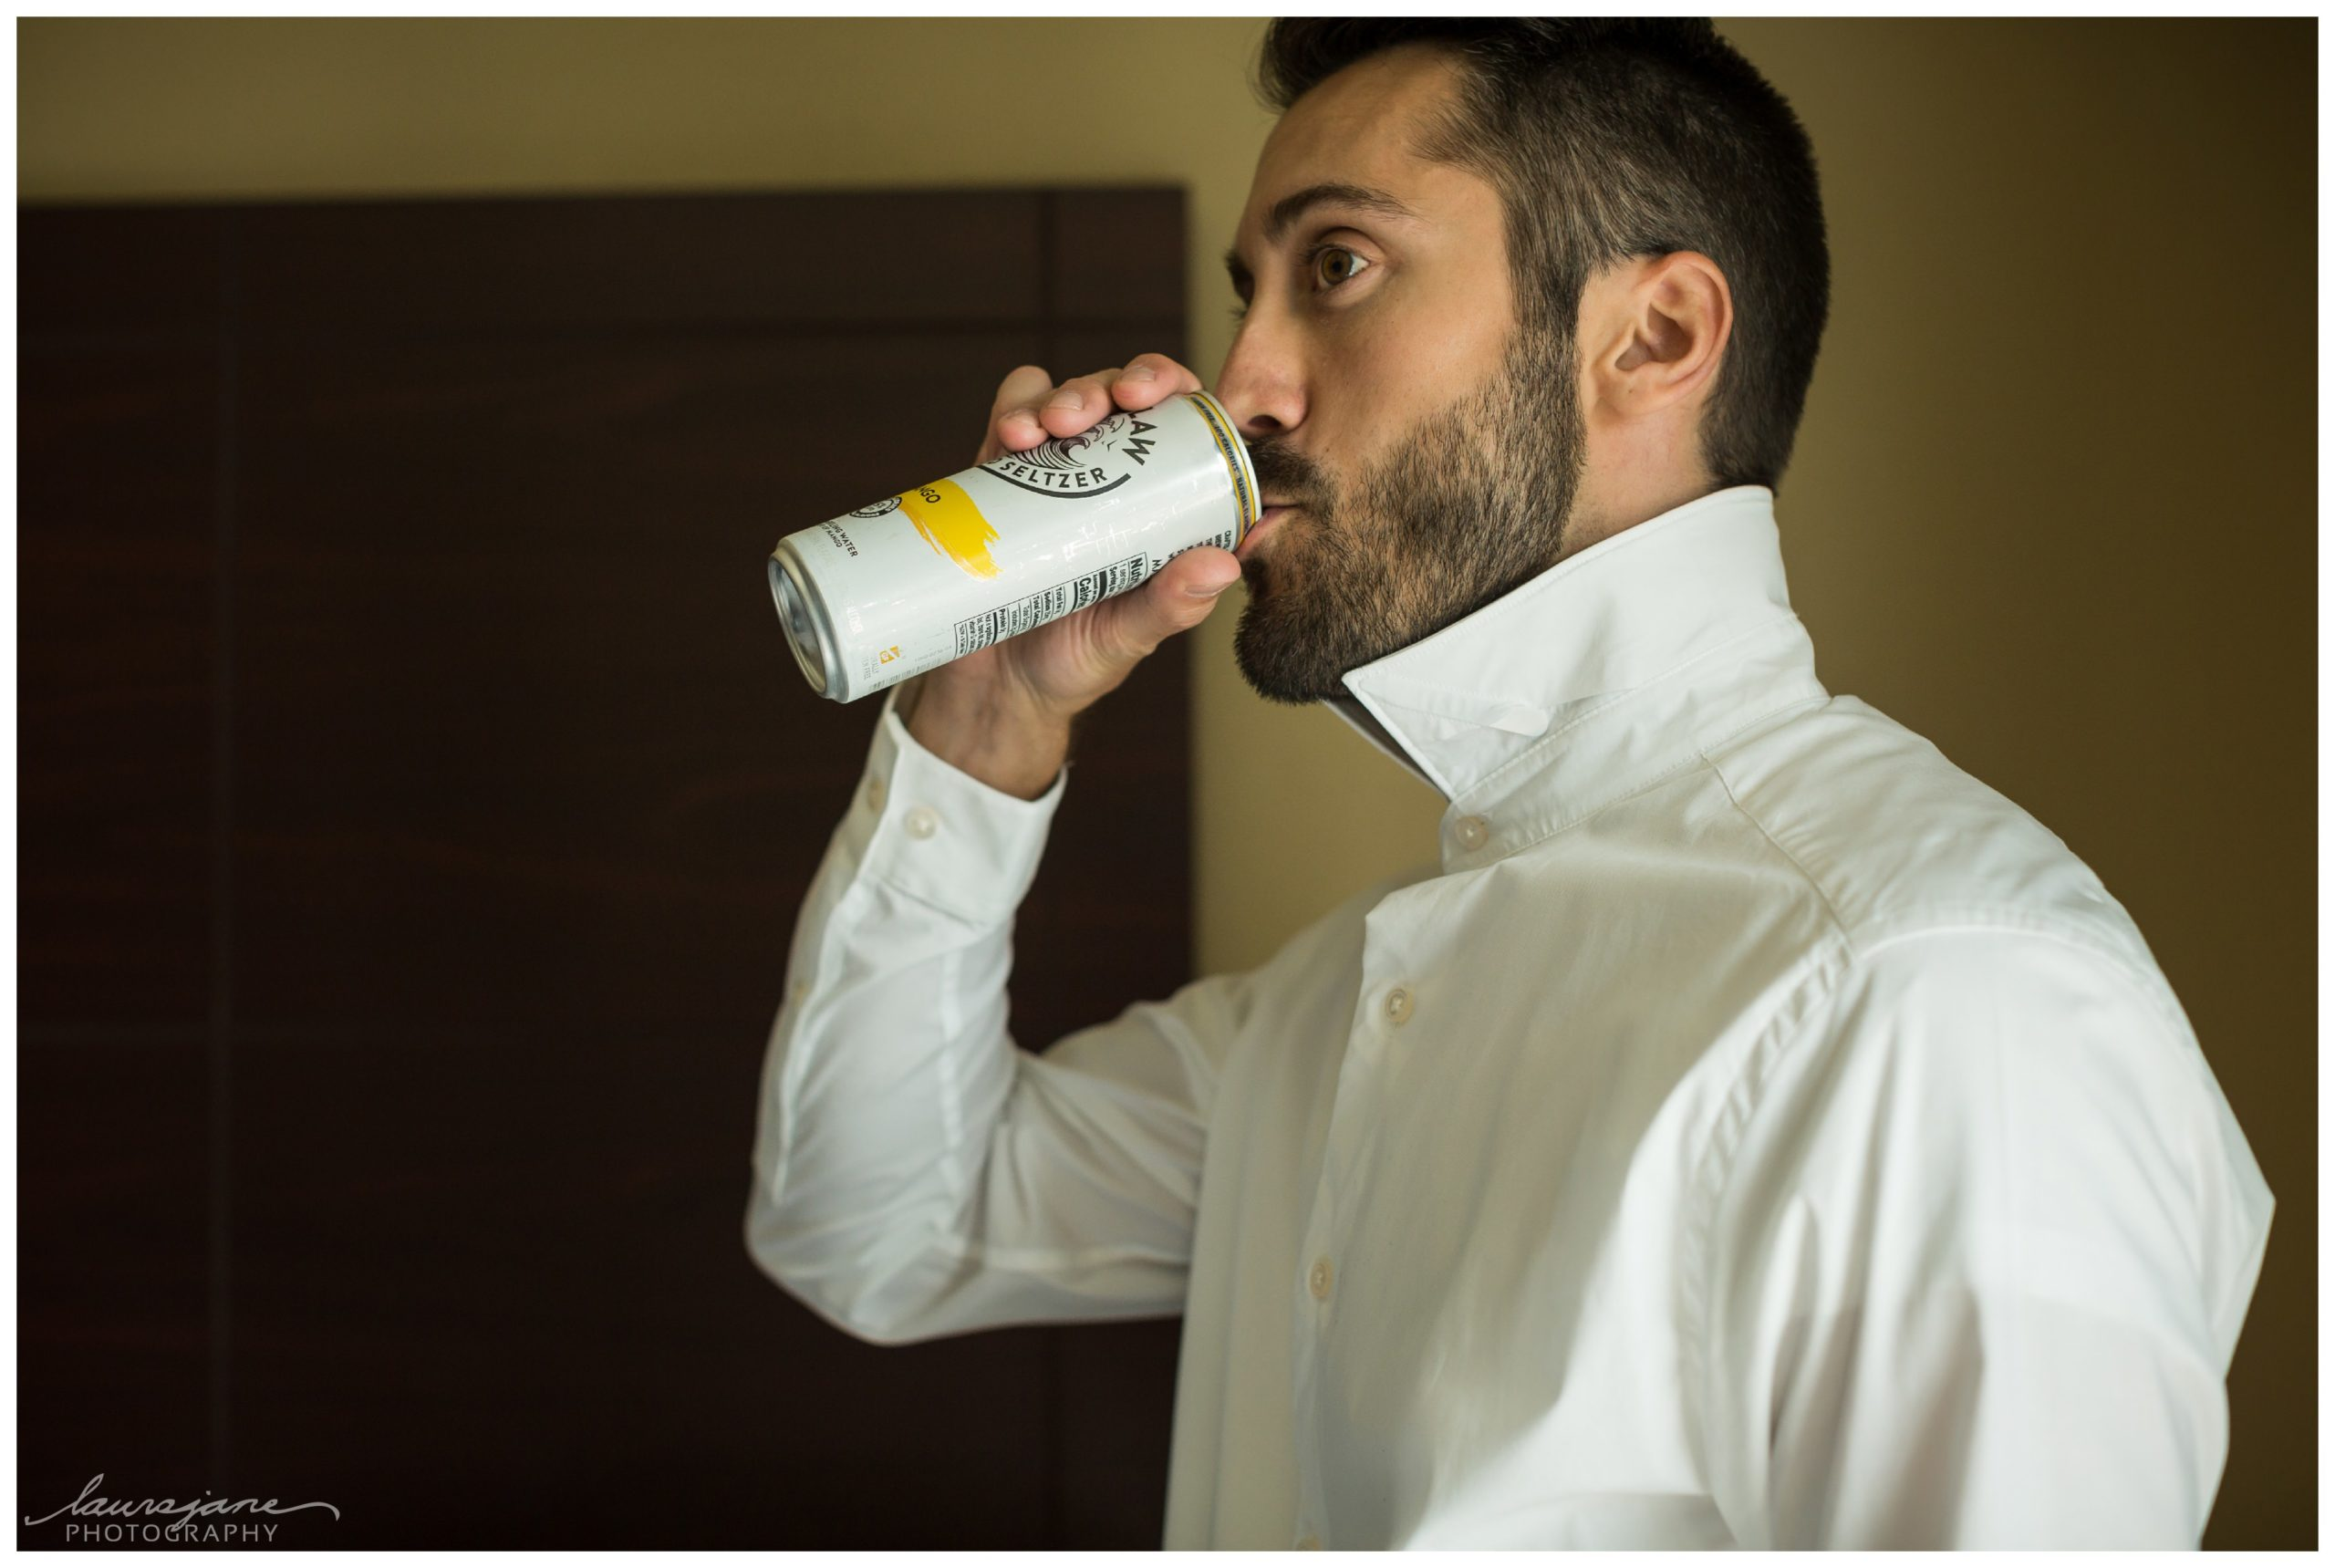 Groom Drinking a WhiteClaw